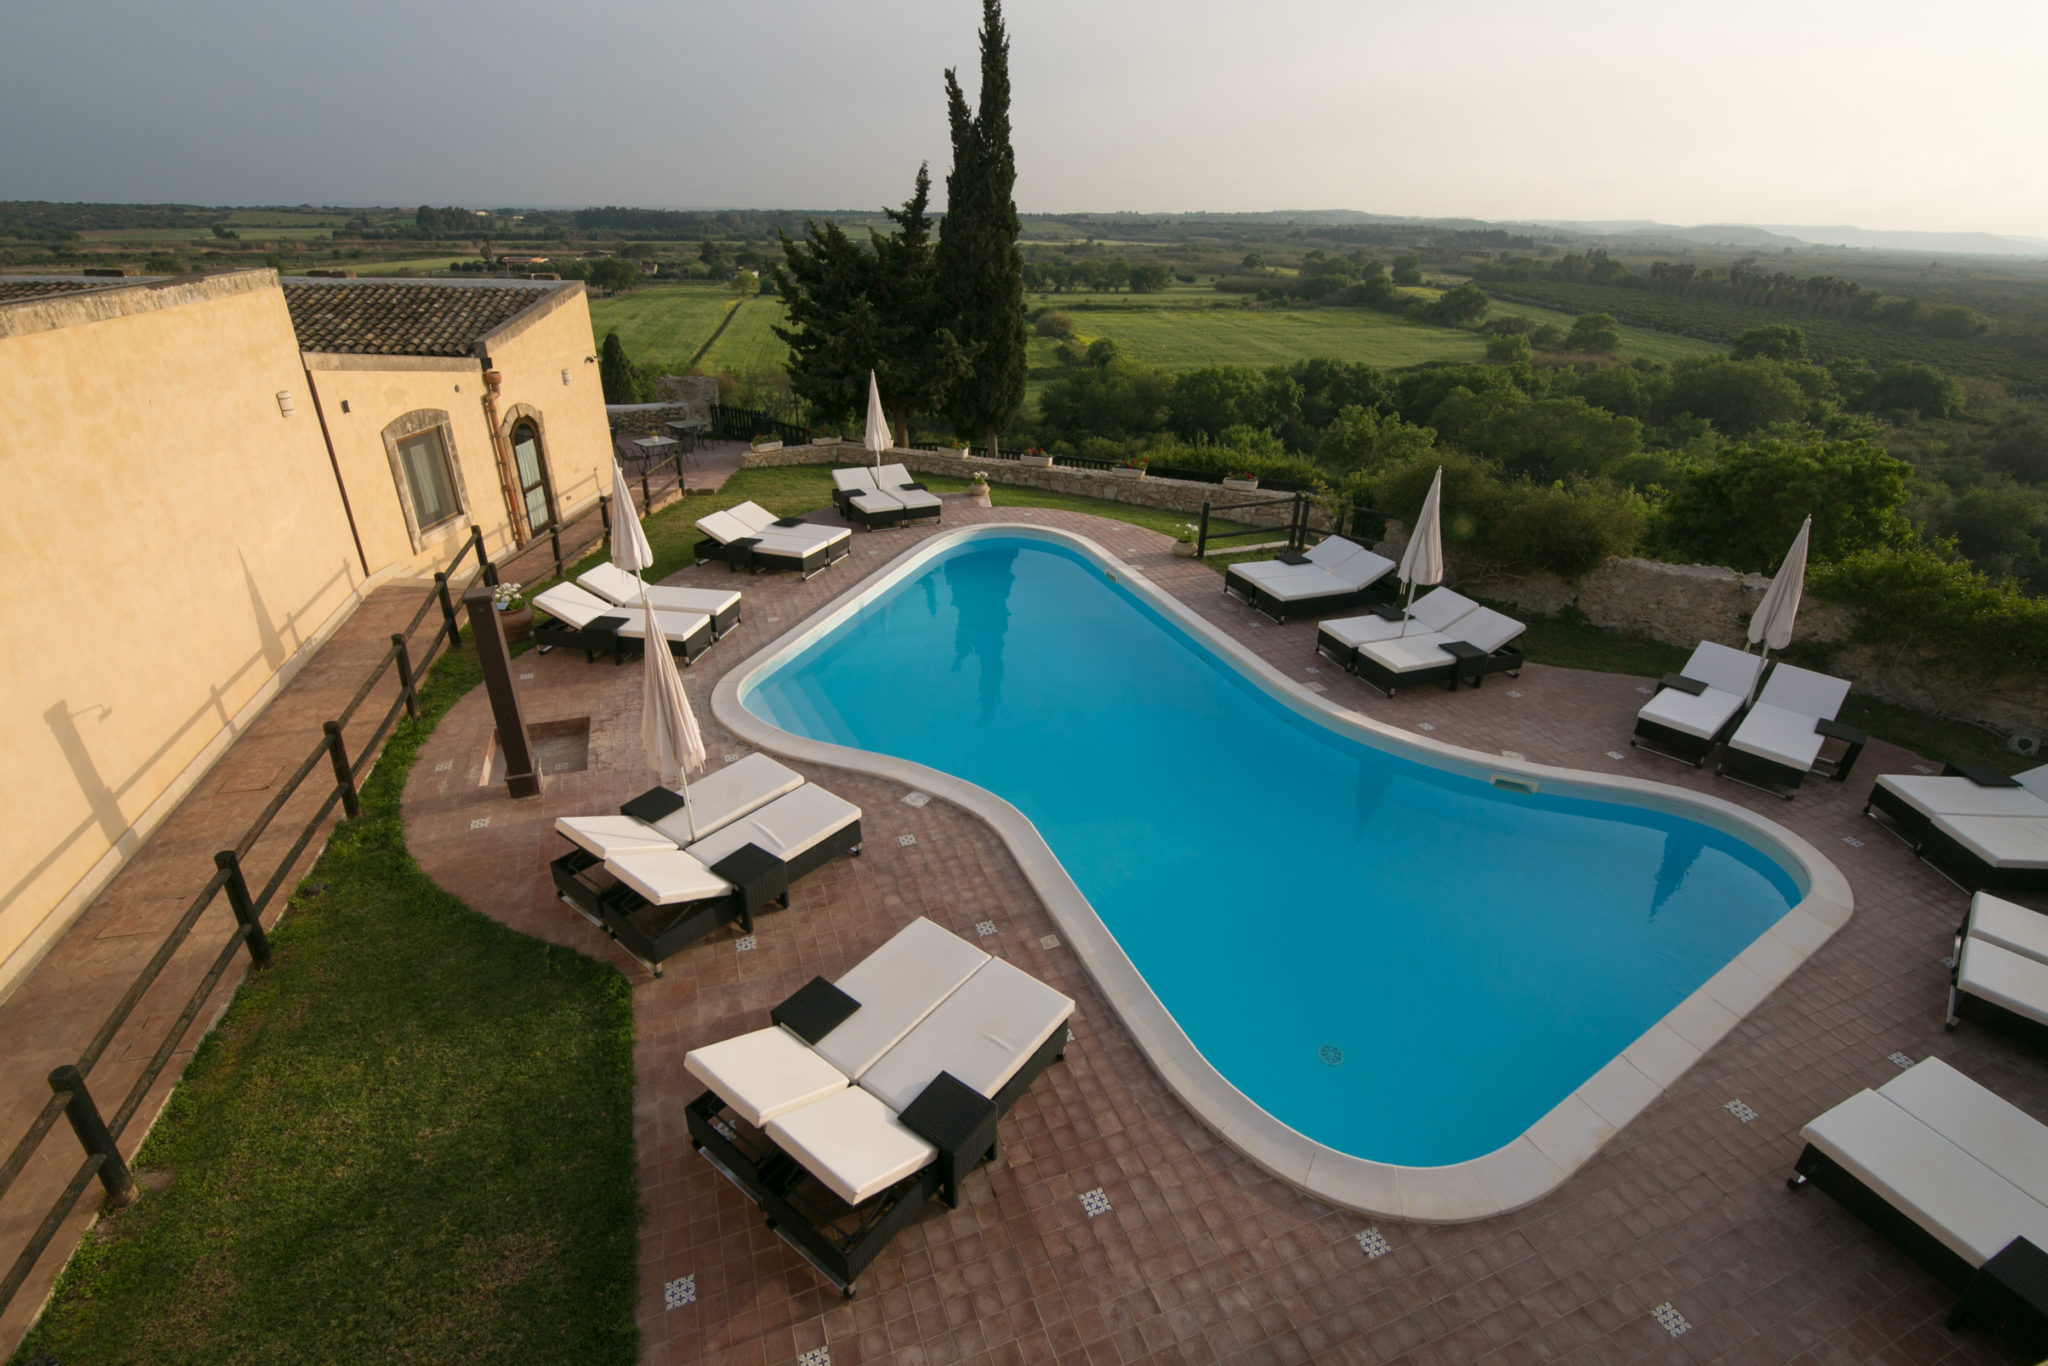 Amazing hotel in Sicily. Book here your holiday in Italy. www.allinitalian.com